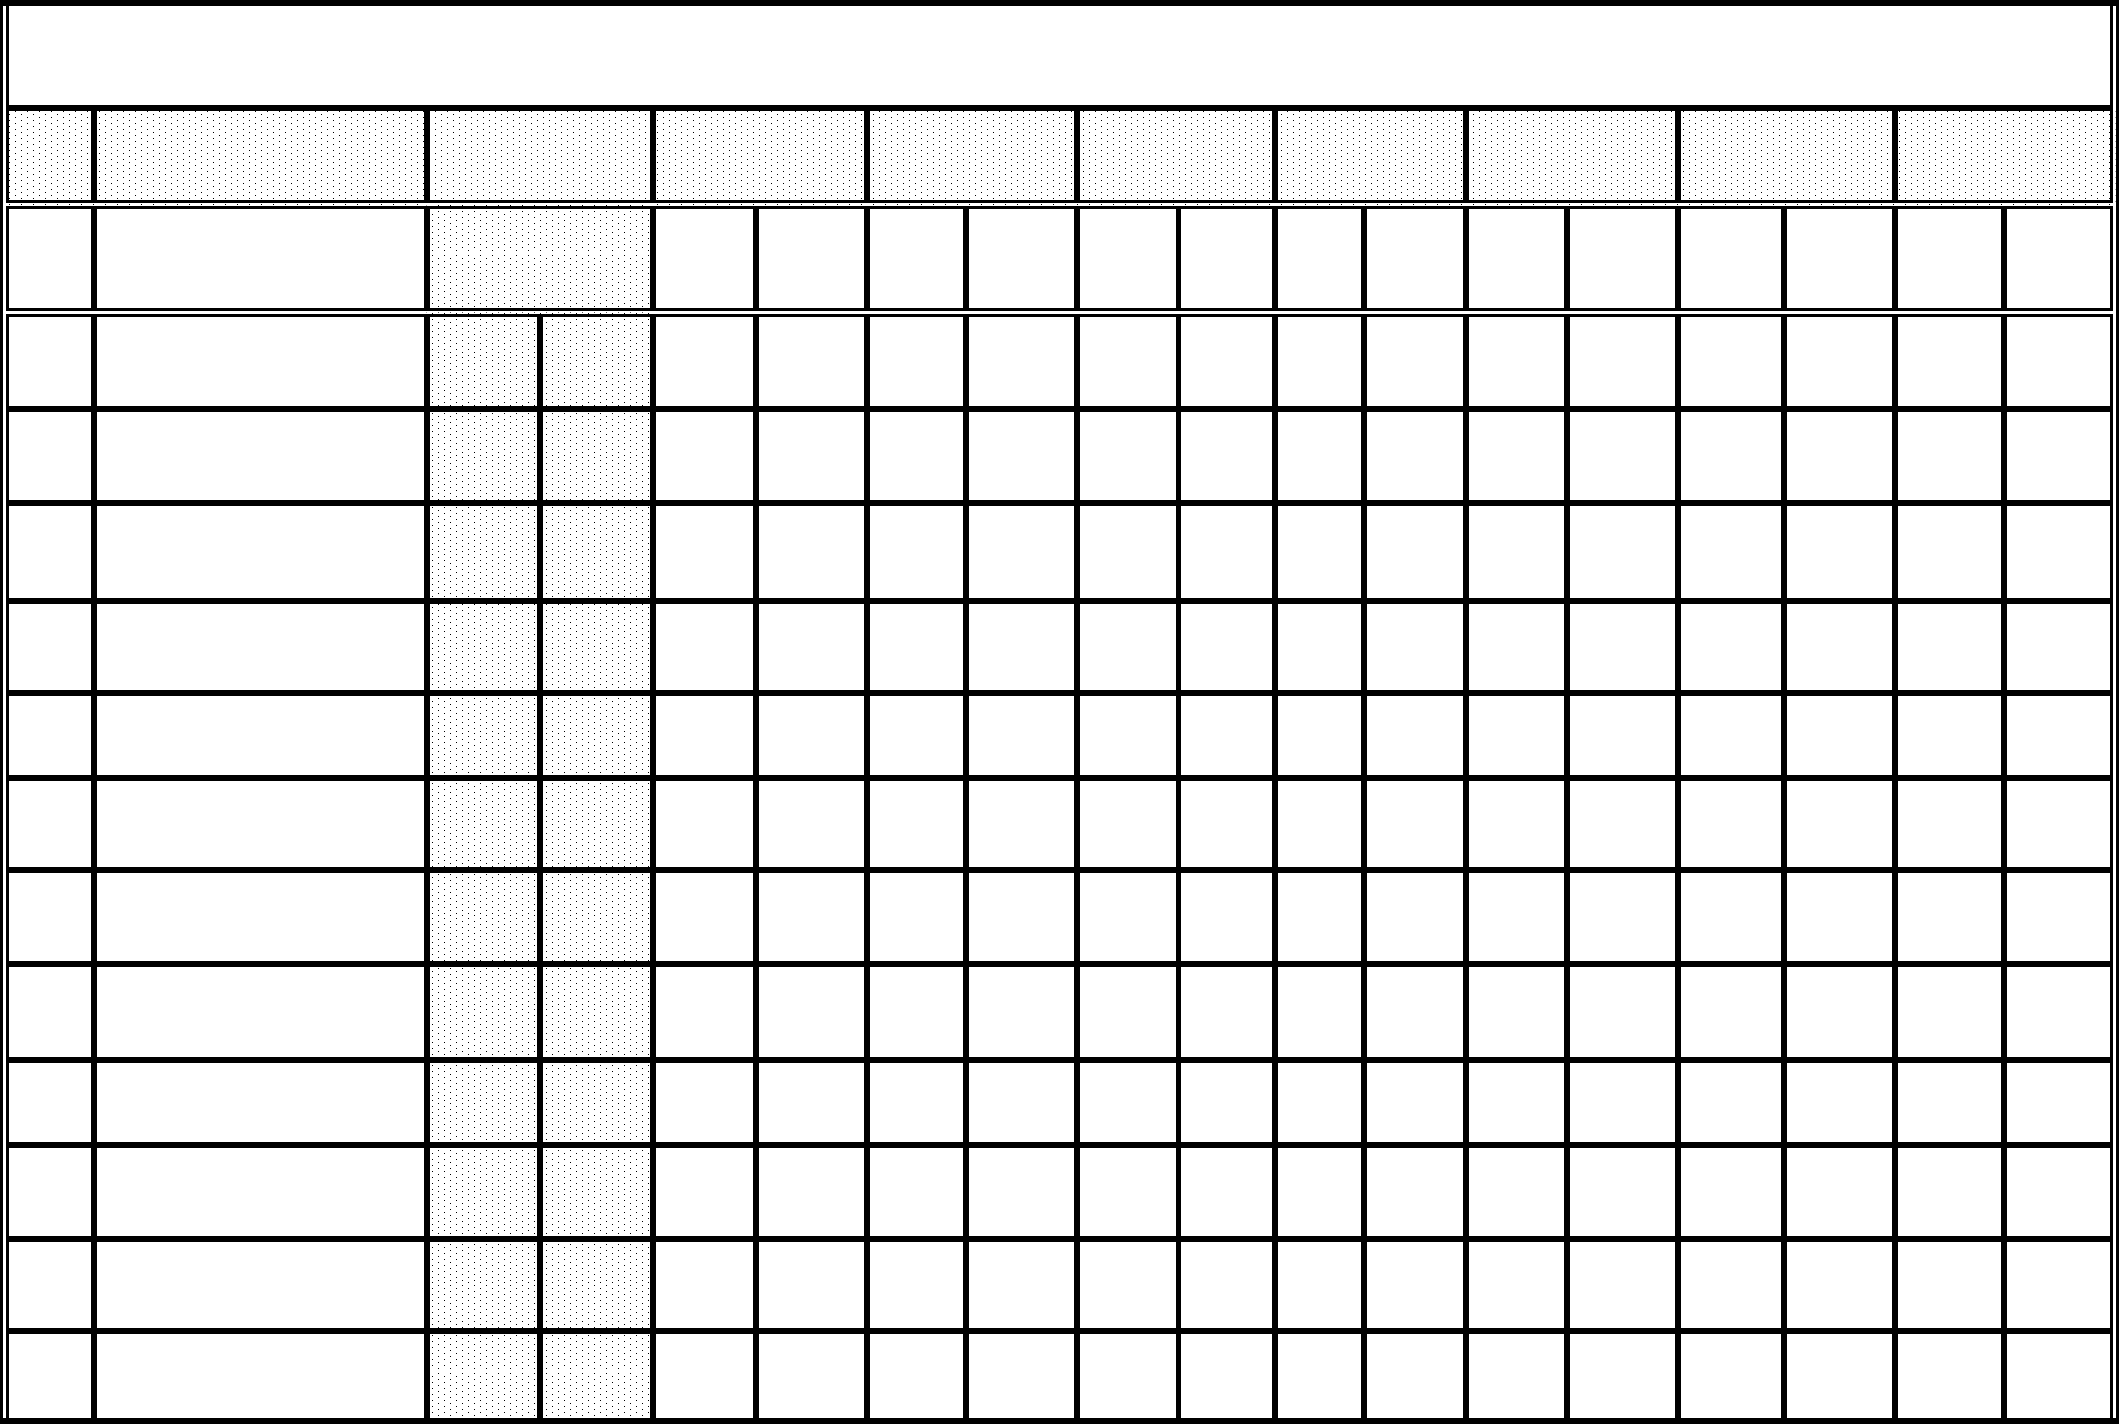 Blank Workout Chart Template Free Download